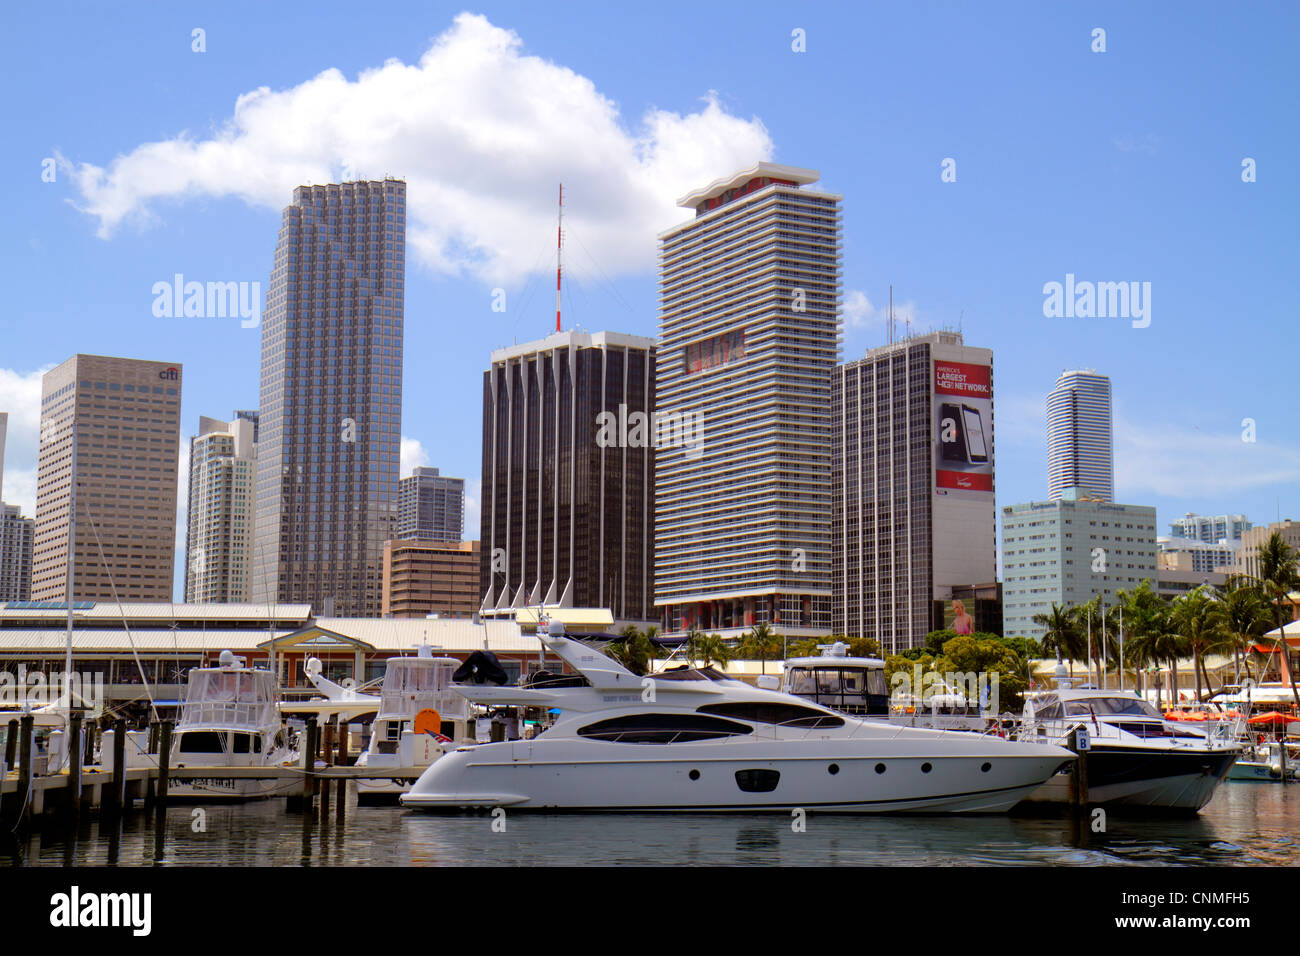 Located on the beautiful Biscayne Bay in the heart of downtown Miami, delight in the best shopping, dining and entertainment as you wander the promenade of Miami's Bayside Marketplace, part of our Miami and Key West bus trip.